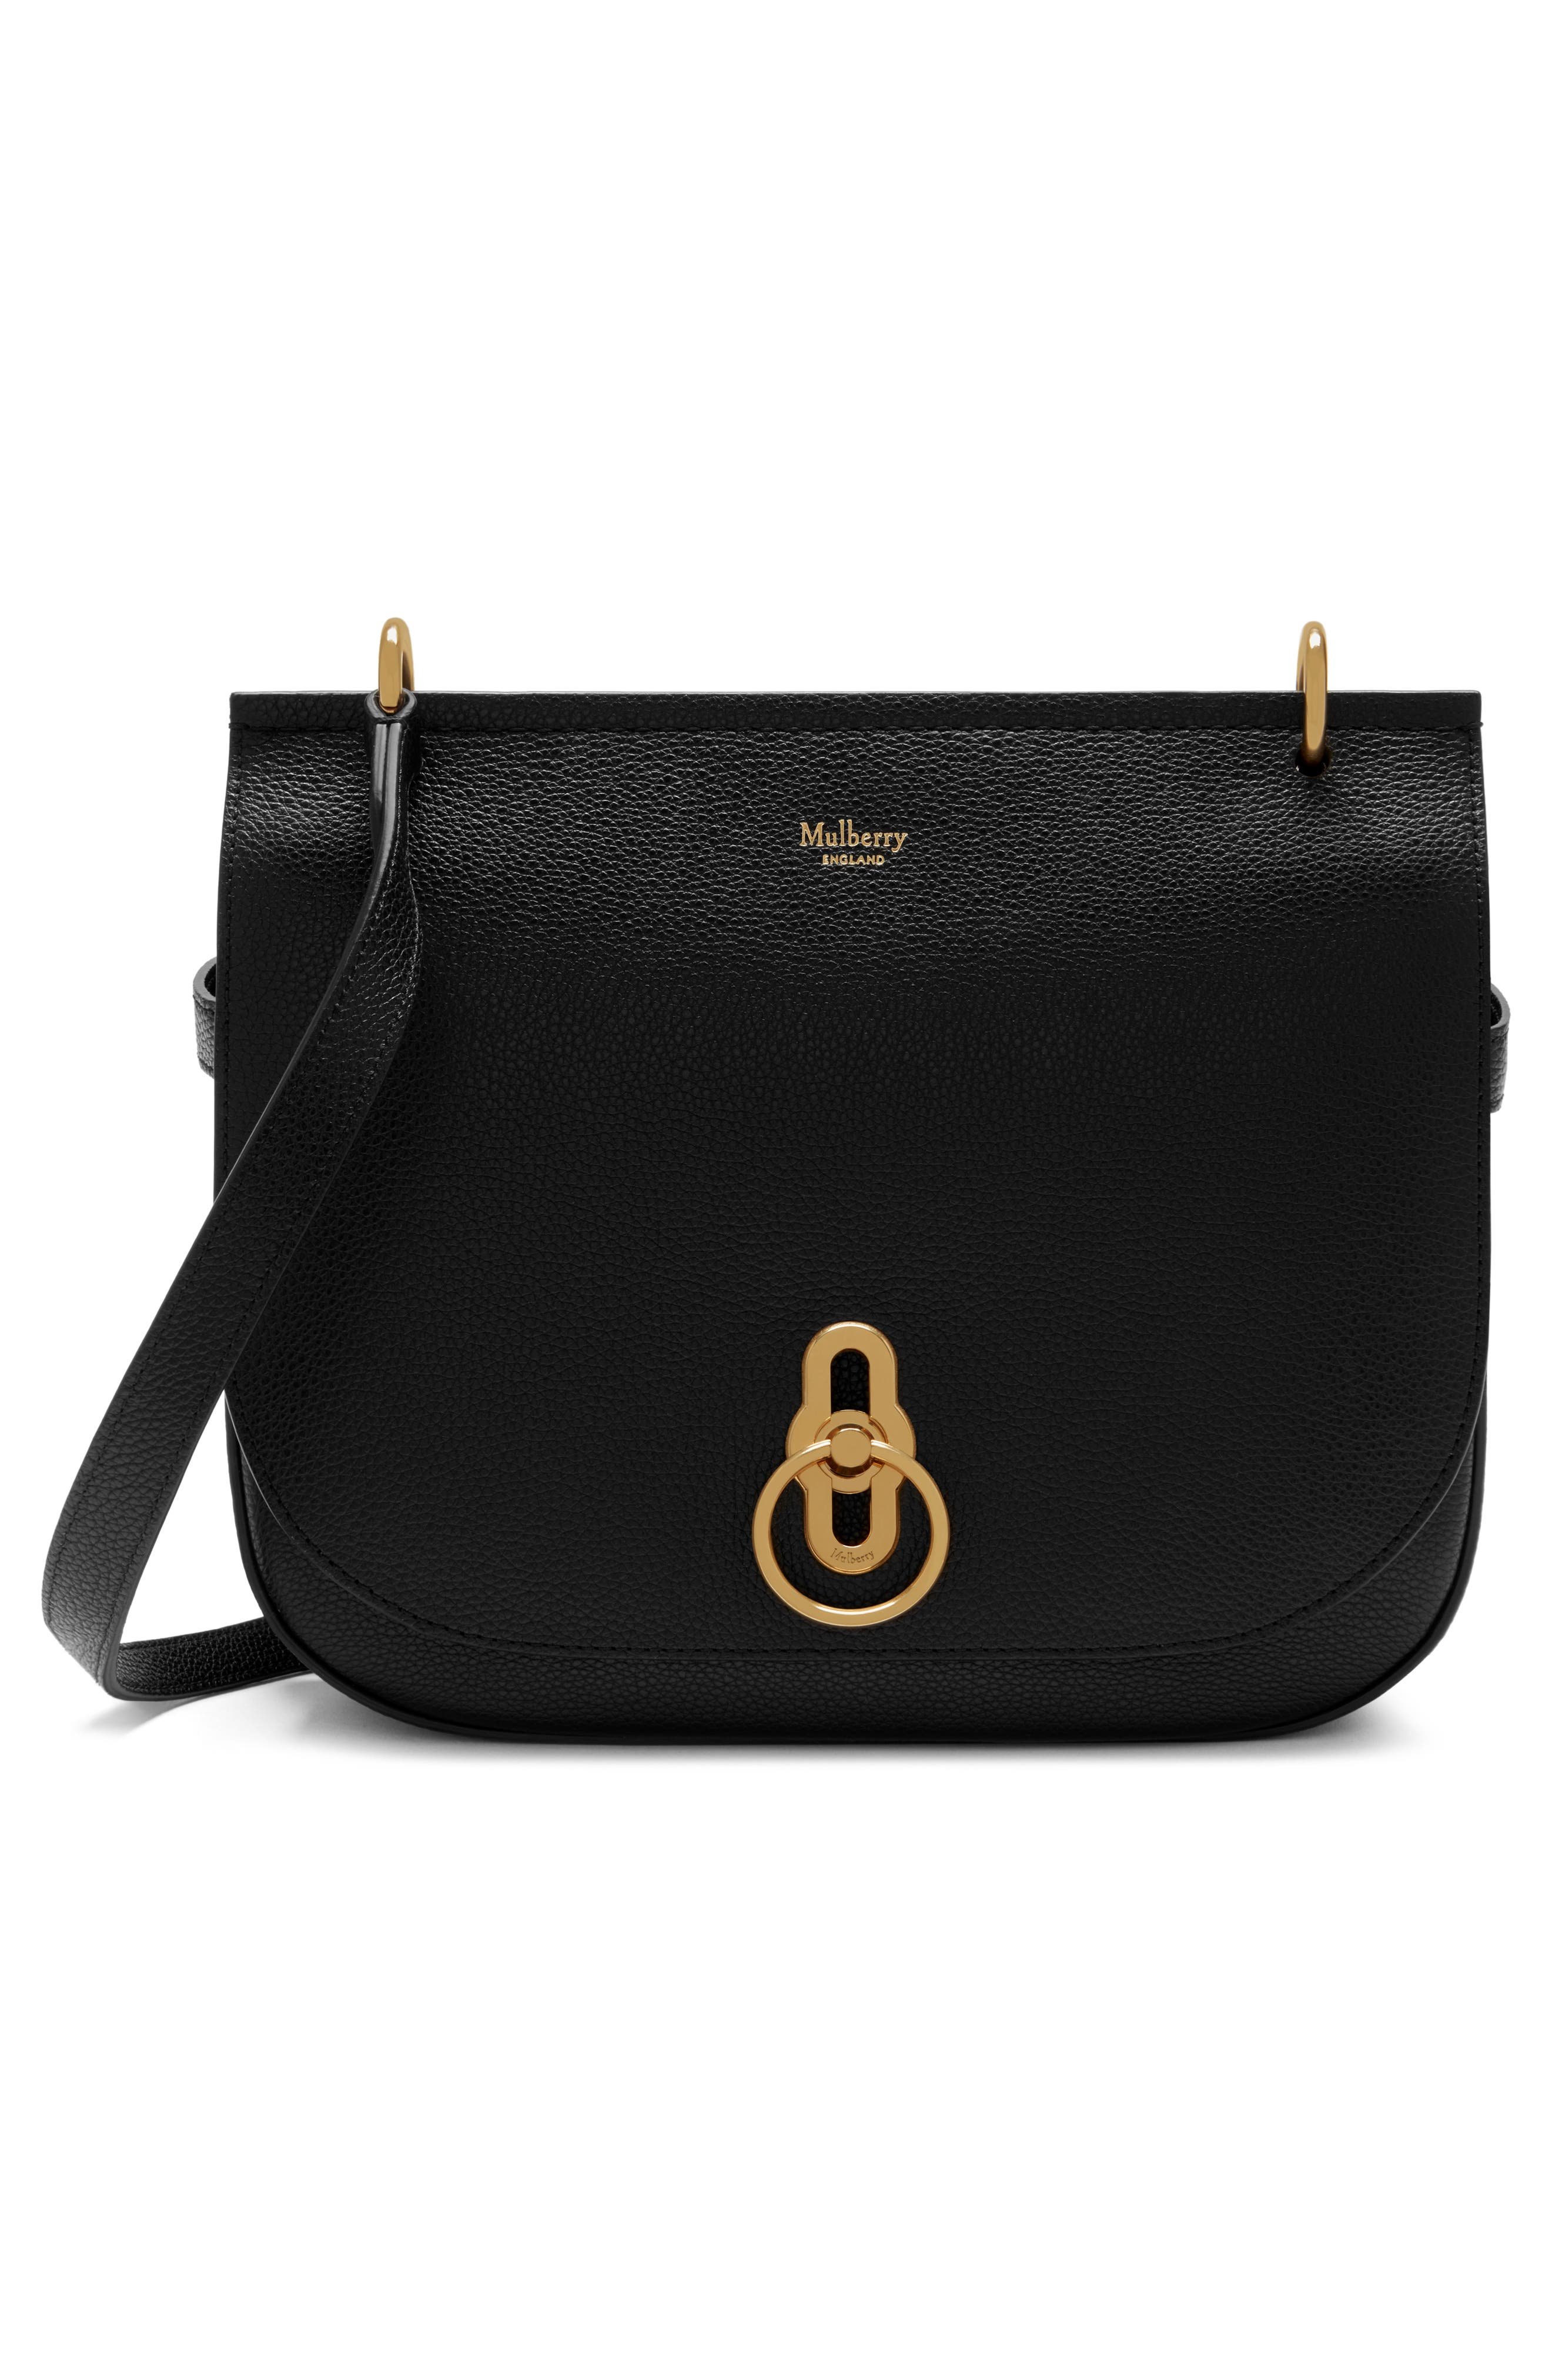 188d9a536f Mulberry Handbags & Wallets for Women | Nordstrom